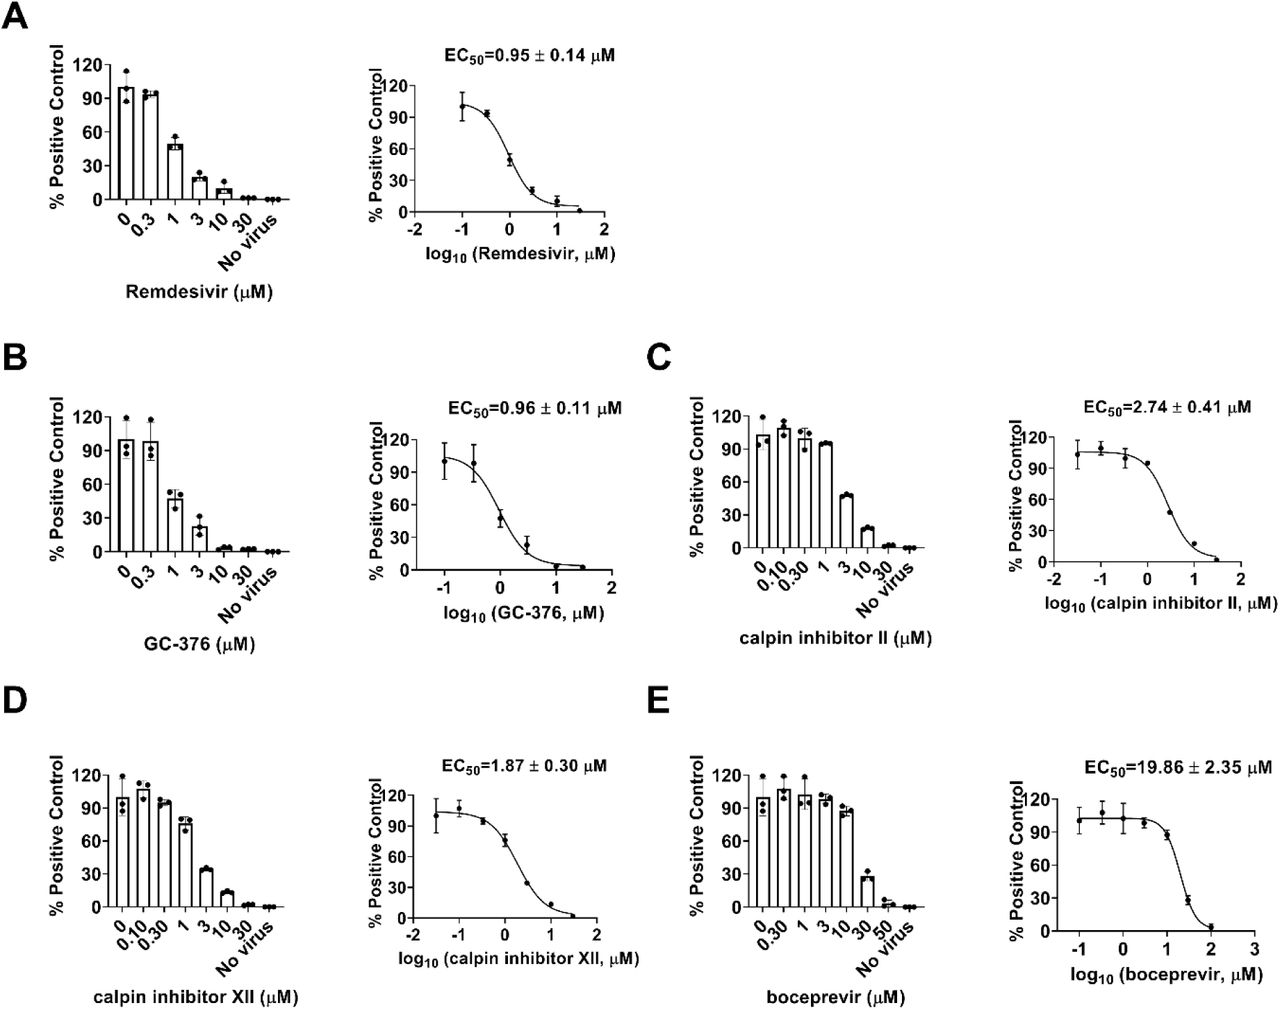 Dose-dependent inhibitory effect of boceprevir, calpain inhibitors II and XII, and GC-376 on HCoV-NL63 viral RNA synthesis in RT-qPCR assay. Positive control remdesivir (A); GC-376 (B); Calpain inhibitor II (C); Calpain inhibitor XII (D); and Boceprevir (E). The left figures represent the normalized RNA levels of the average of three repeats from each concentration tested, and EC 50 curve fittings using log (concentration of inhibitors) vs normalized RNA levels with variable slopes in prism 8 were shown in the right figures. Data are mean ± standard deviation of three replicates.